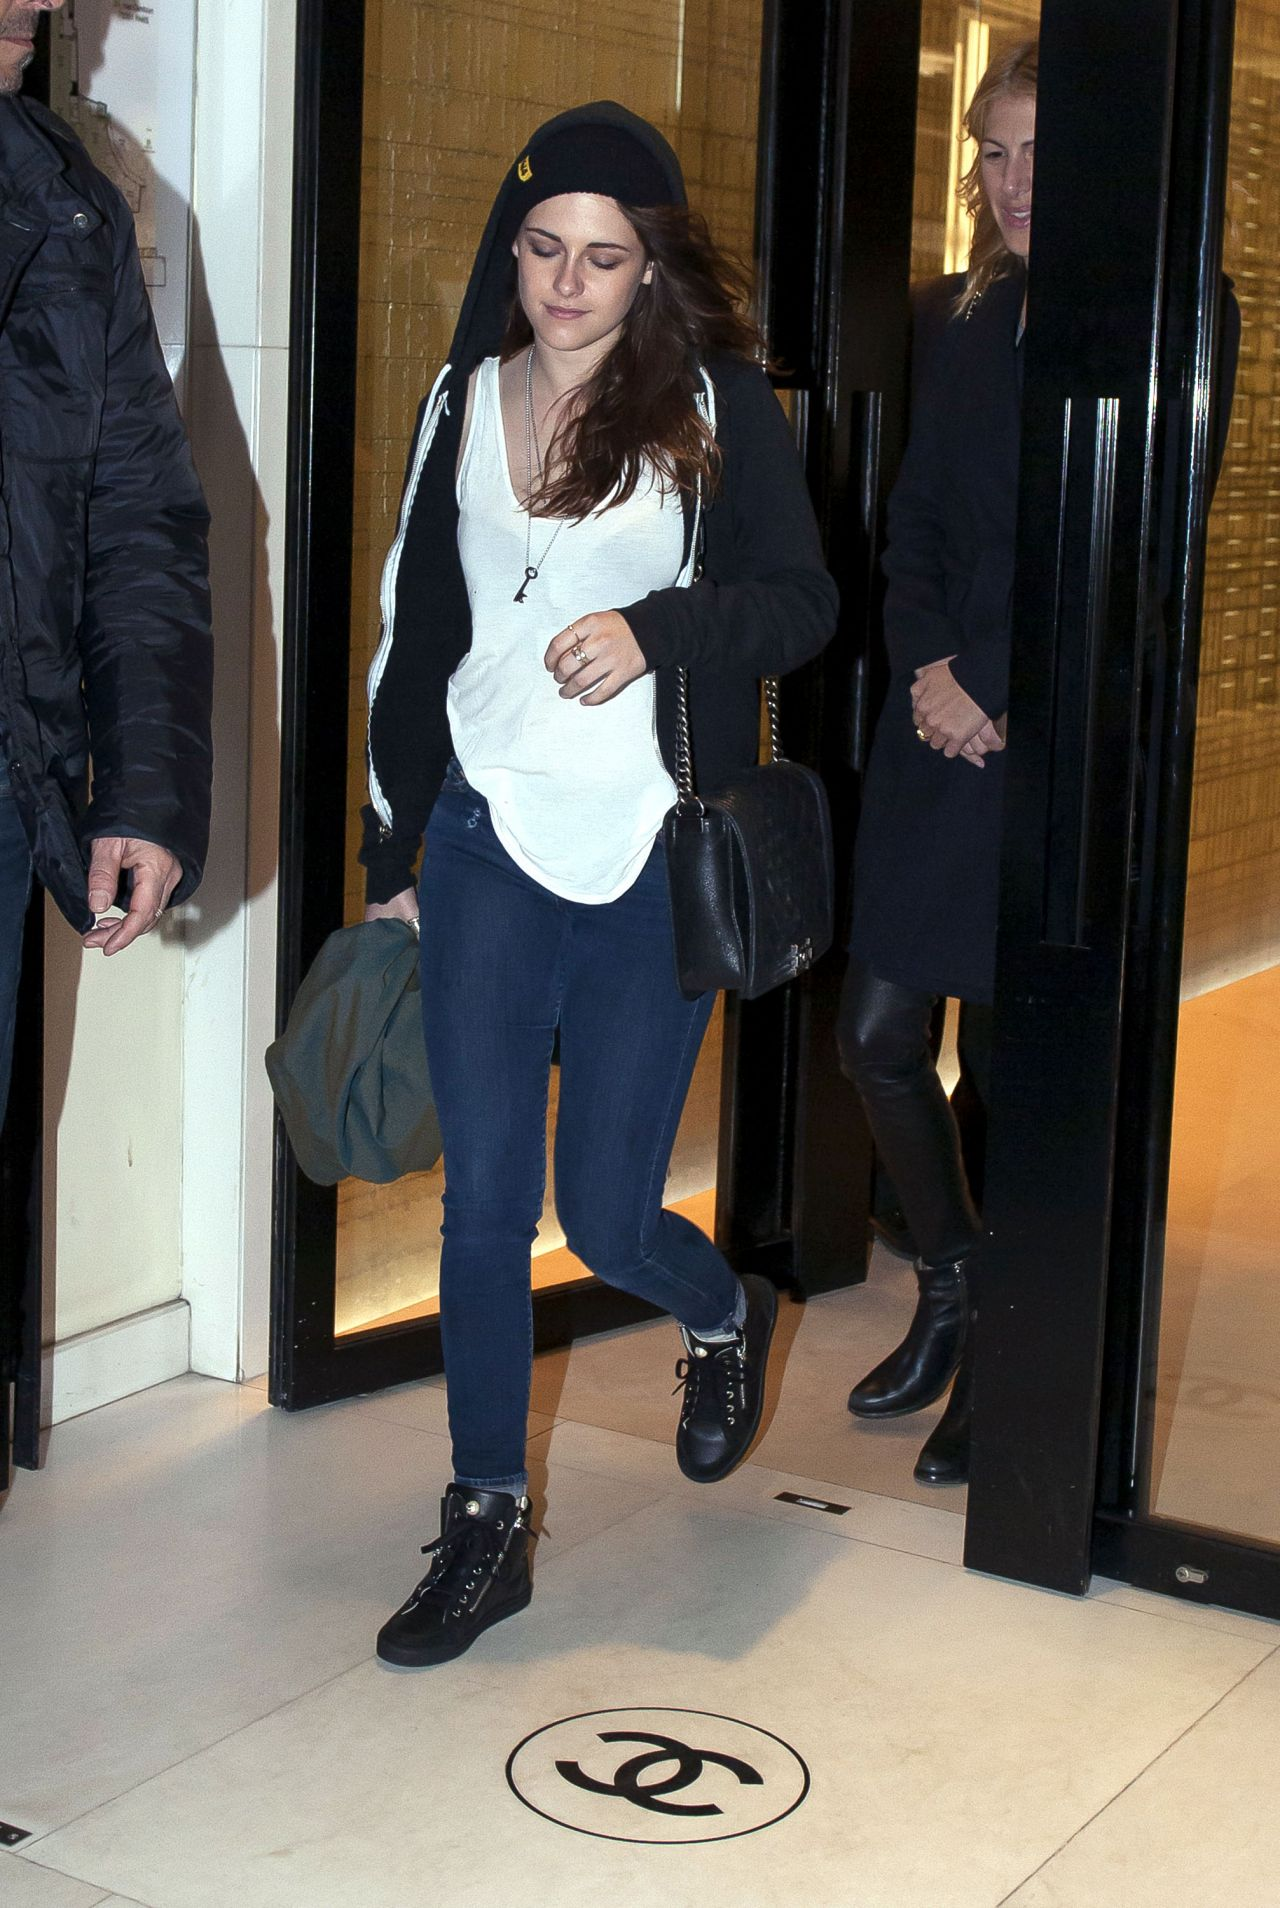 Kristen Stewart Street Style - Visiting Chanel Boutique in Paris - February 2014